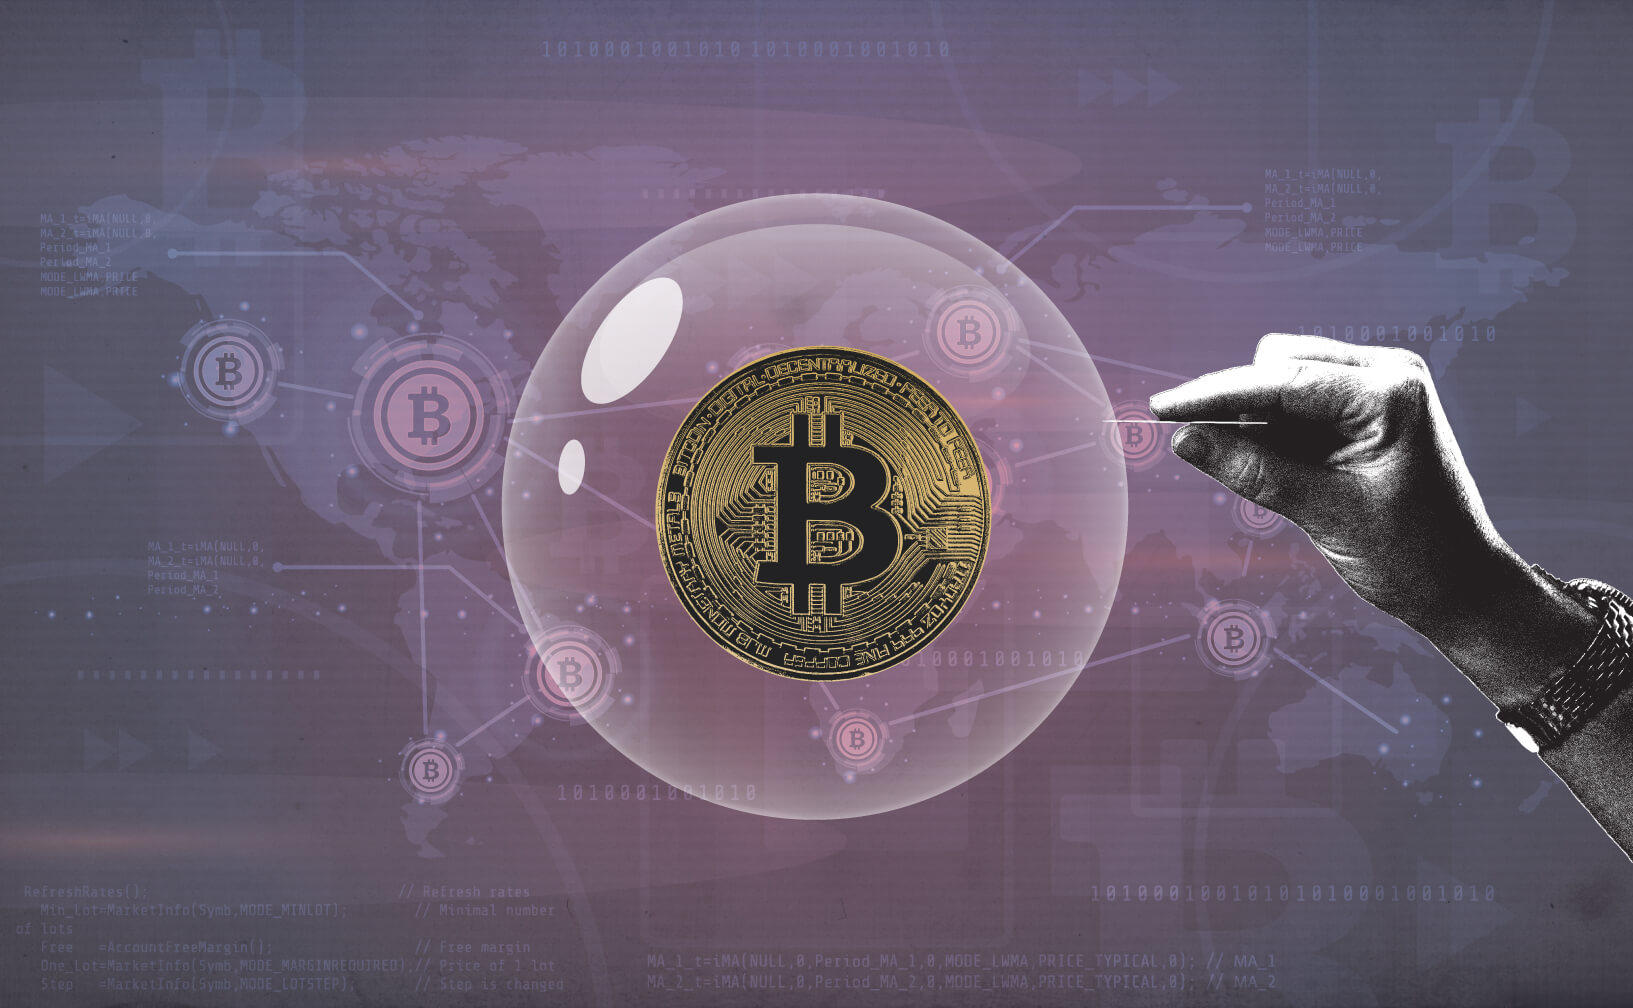 Intelligence Squared Us Debates Is Bitcoin More Than A Bubble